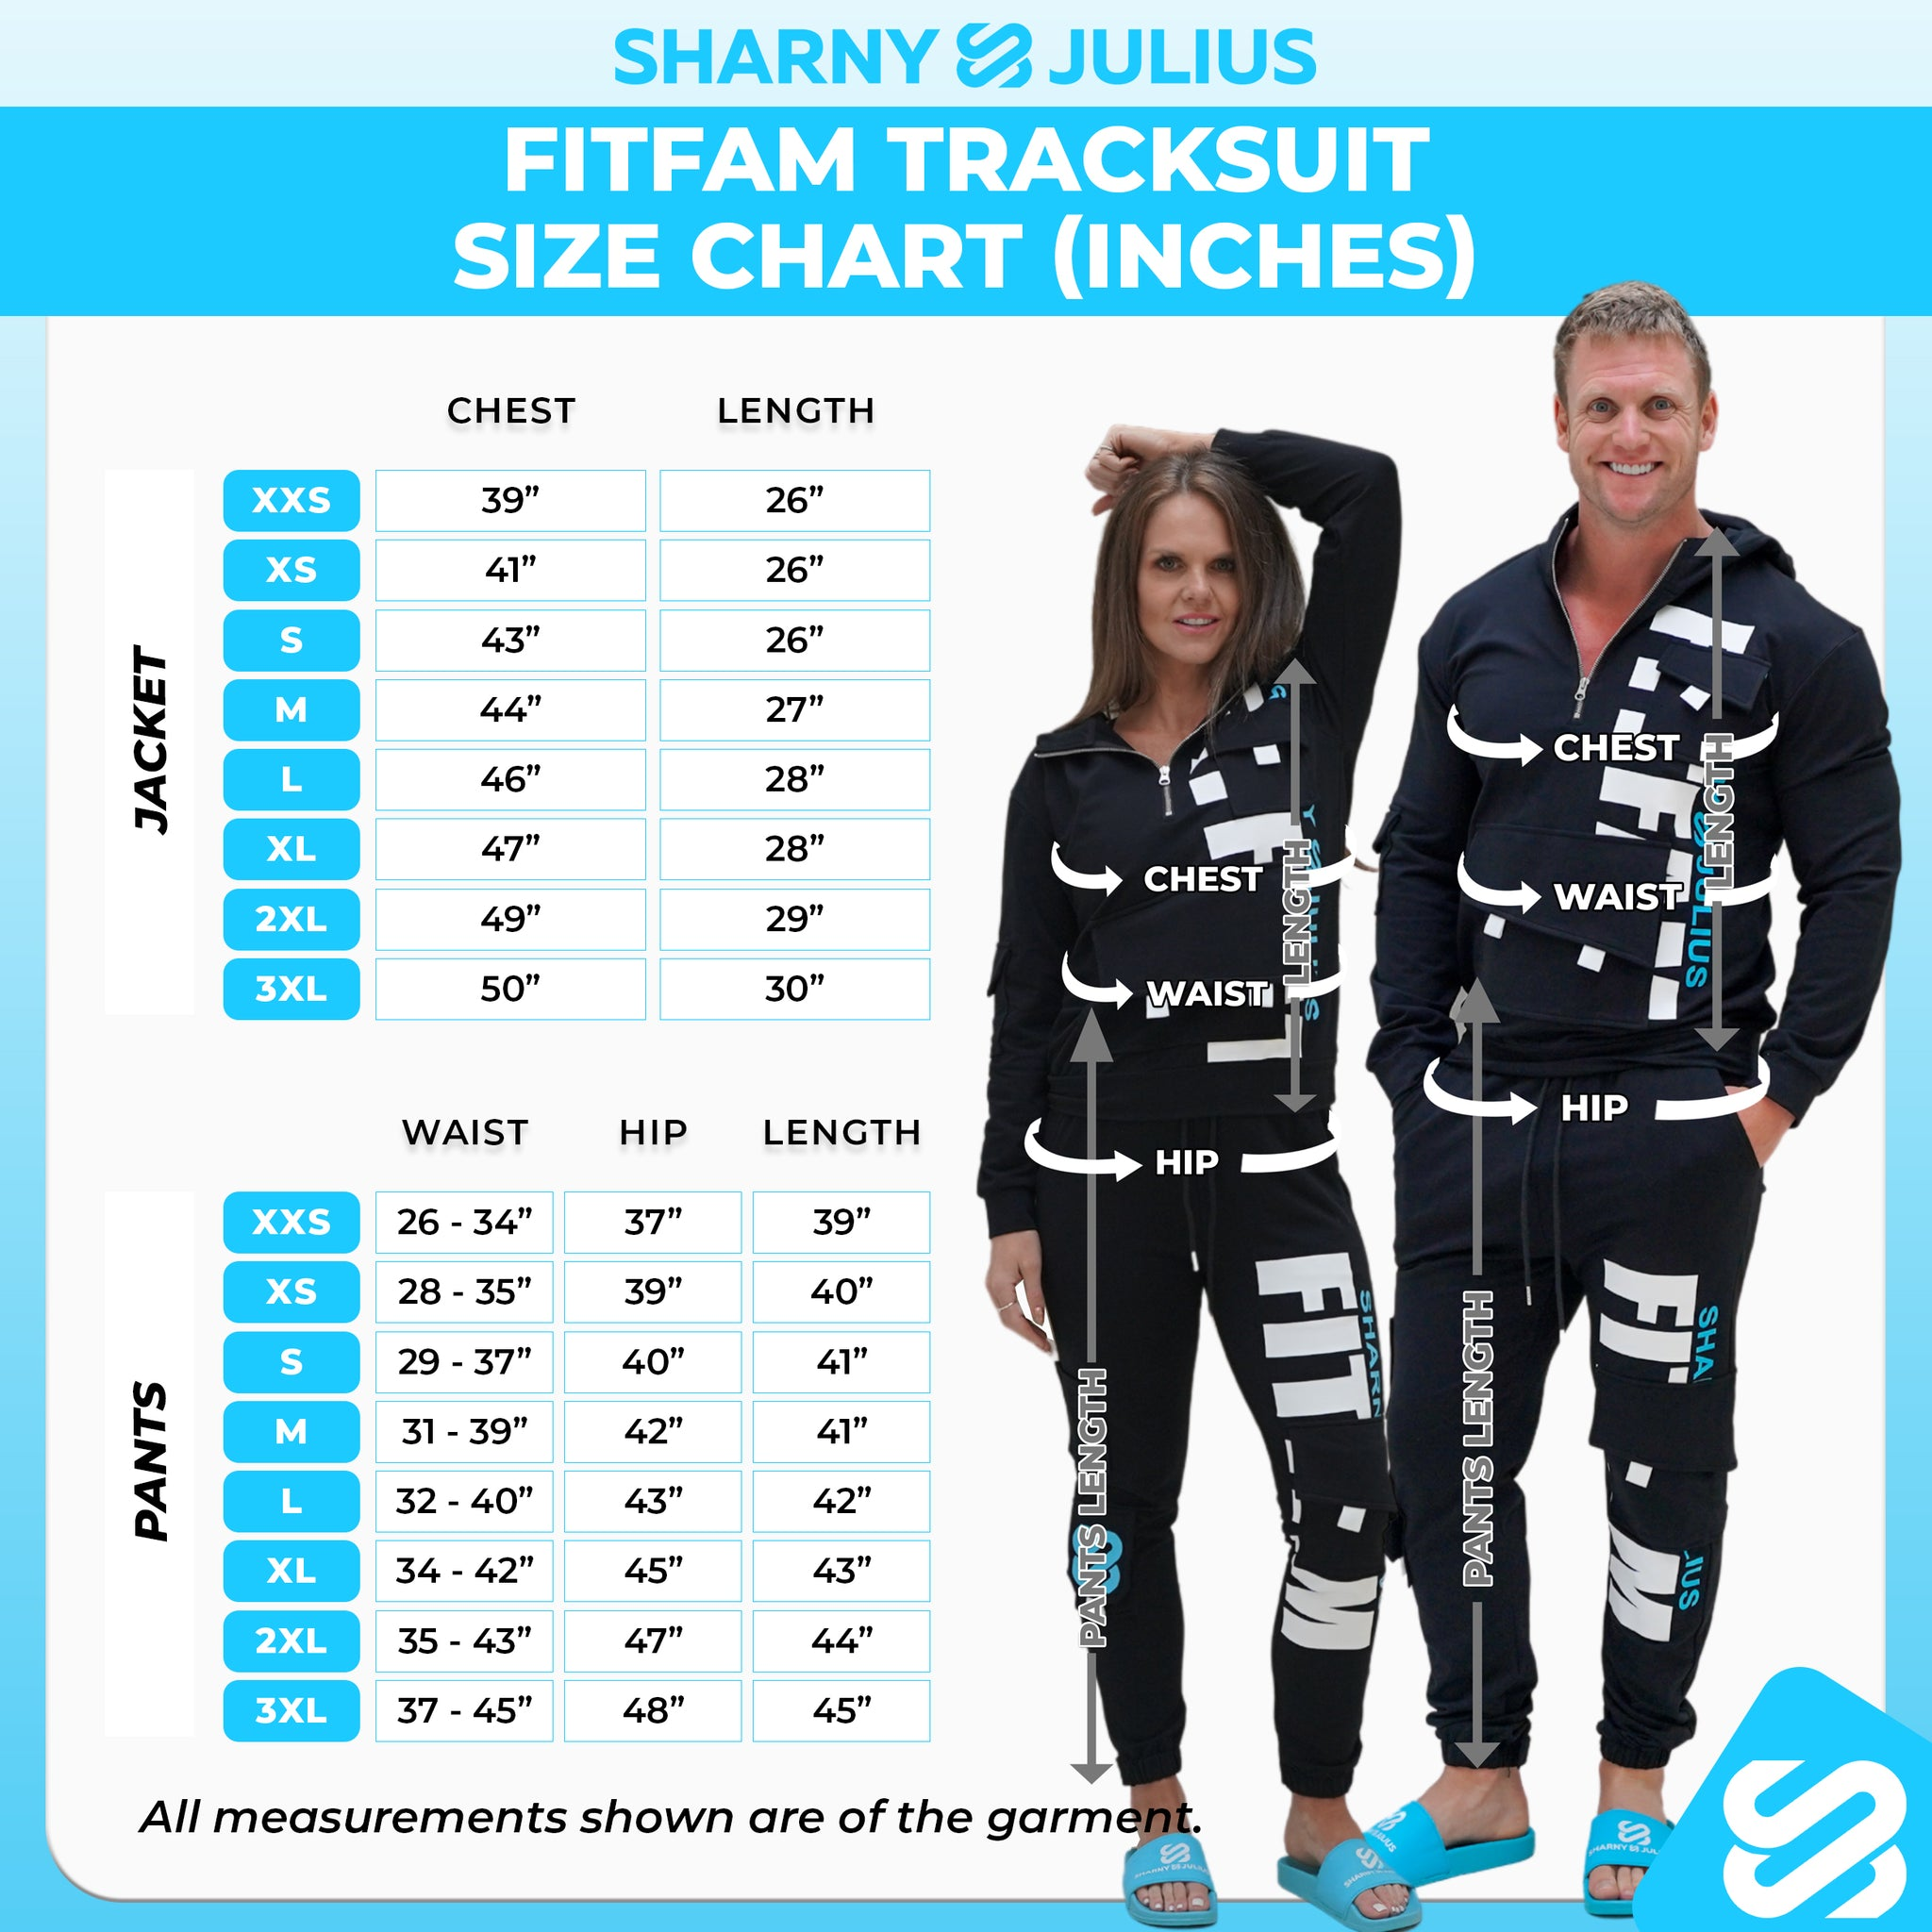 fitfam tracksuit size chart inches